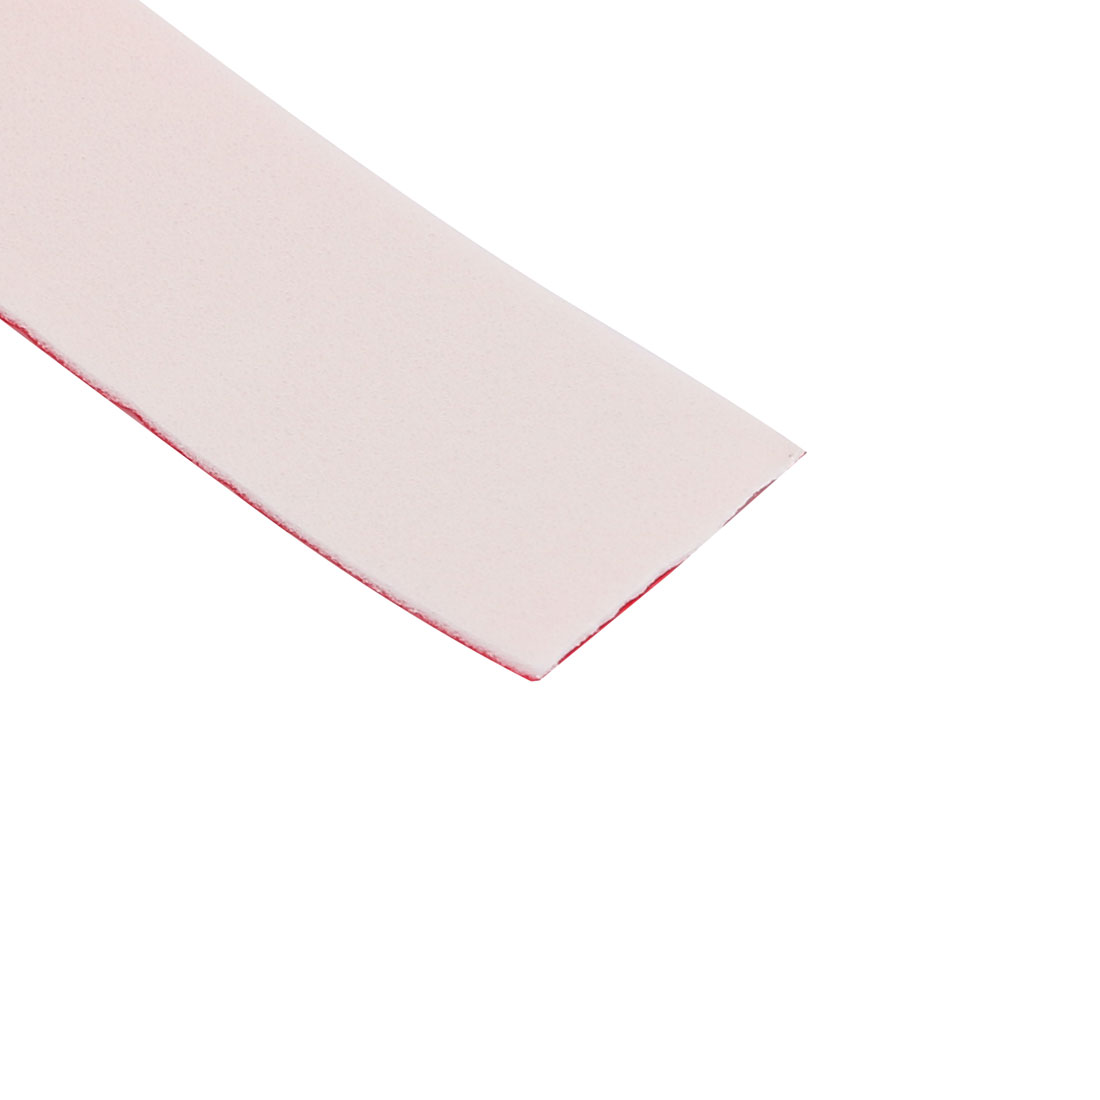 2Pcs 15mm Width 2mm Thickness Dual-sided Adhesive Shockproof Sponge Foam Tape 5M - image 1 de 3